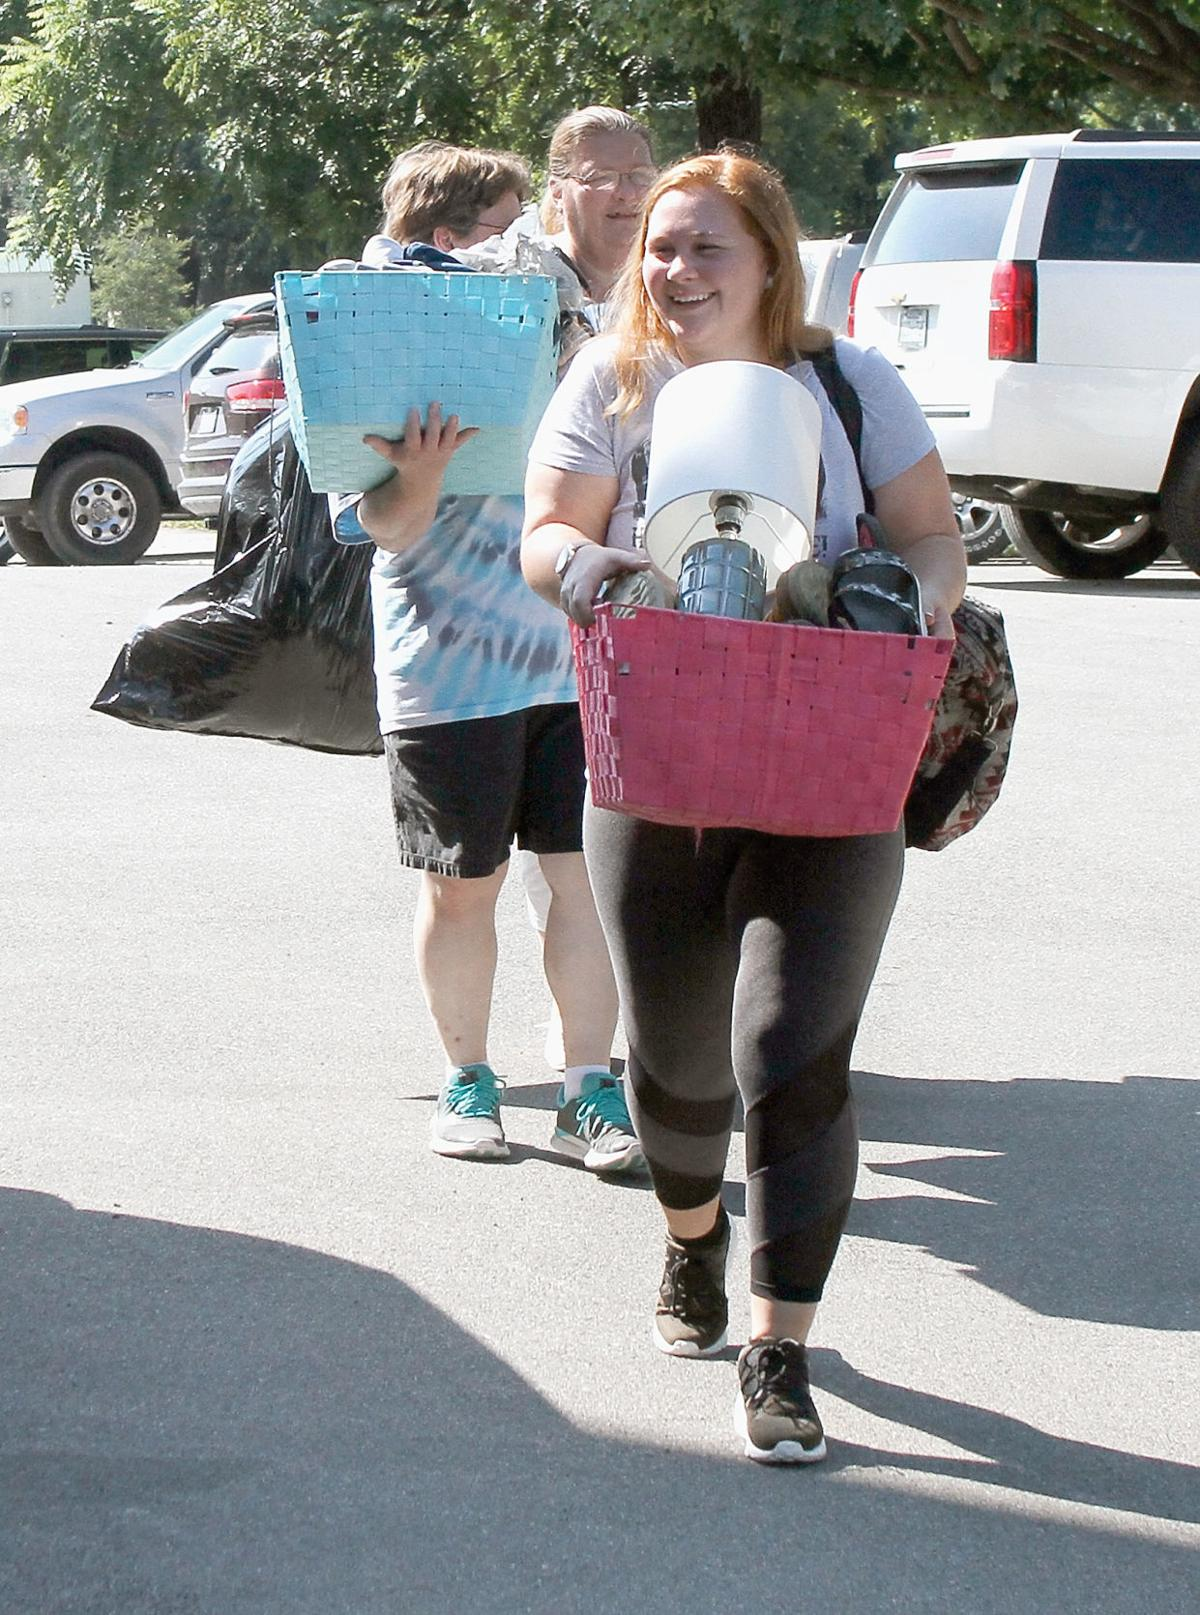 Marissa Nelson moves in to Maryville College dorm